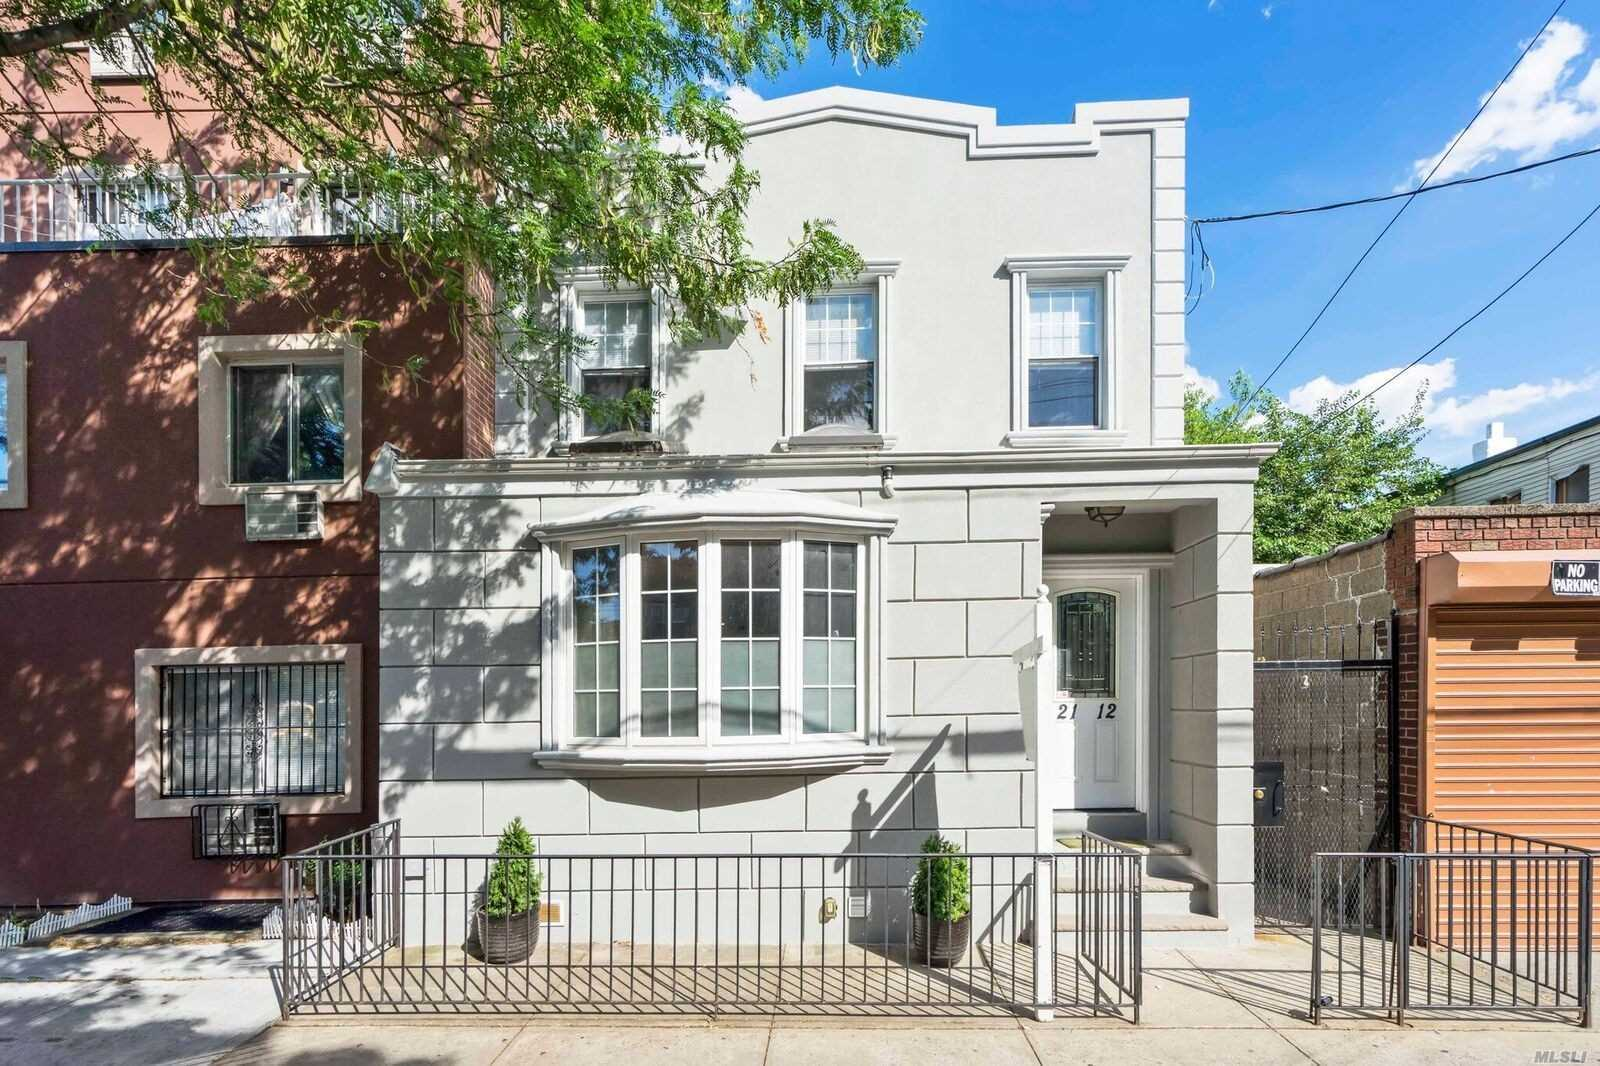 Renovated Semi Detached 1 Family Home In Mint Condition. Large Rooms, 2.5 Bathrooms, Attic, Modern Kitchen With Ss Appliances,  2 King Sized Bedrooms And 1 Standard Sized Bedroom. Full Finished Basement. Nice Private Yard With Rear Deck And 2nd Fl Back Terrace.